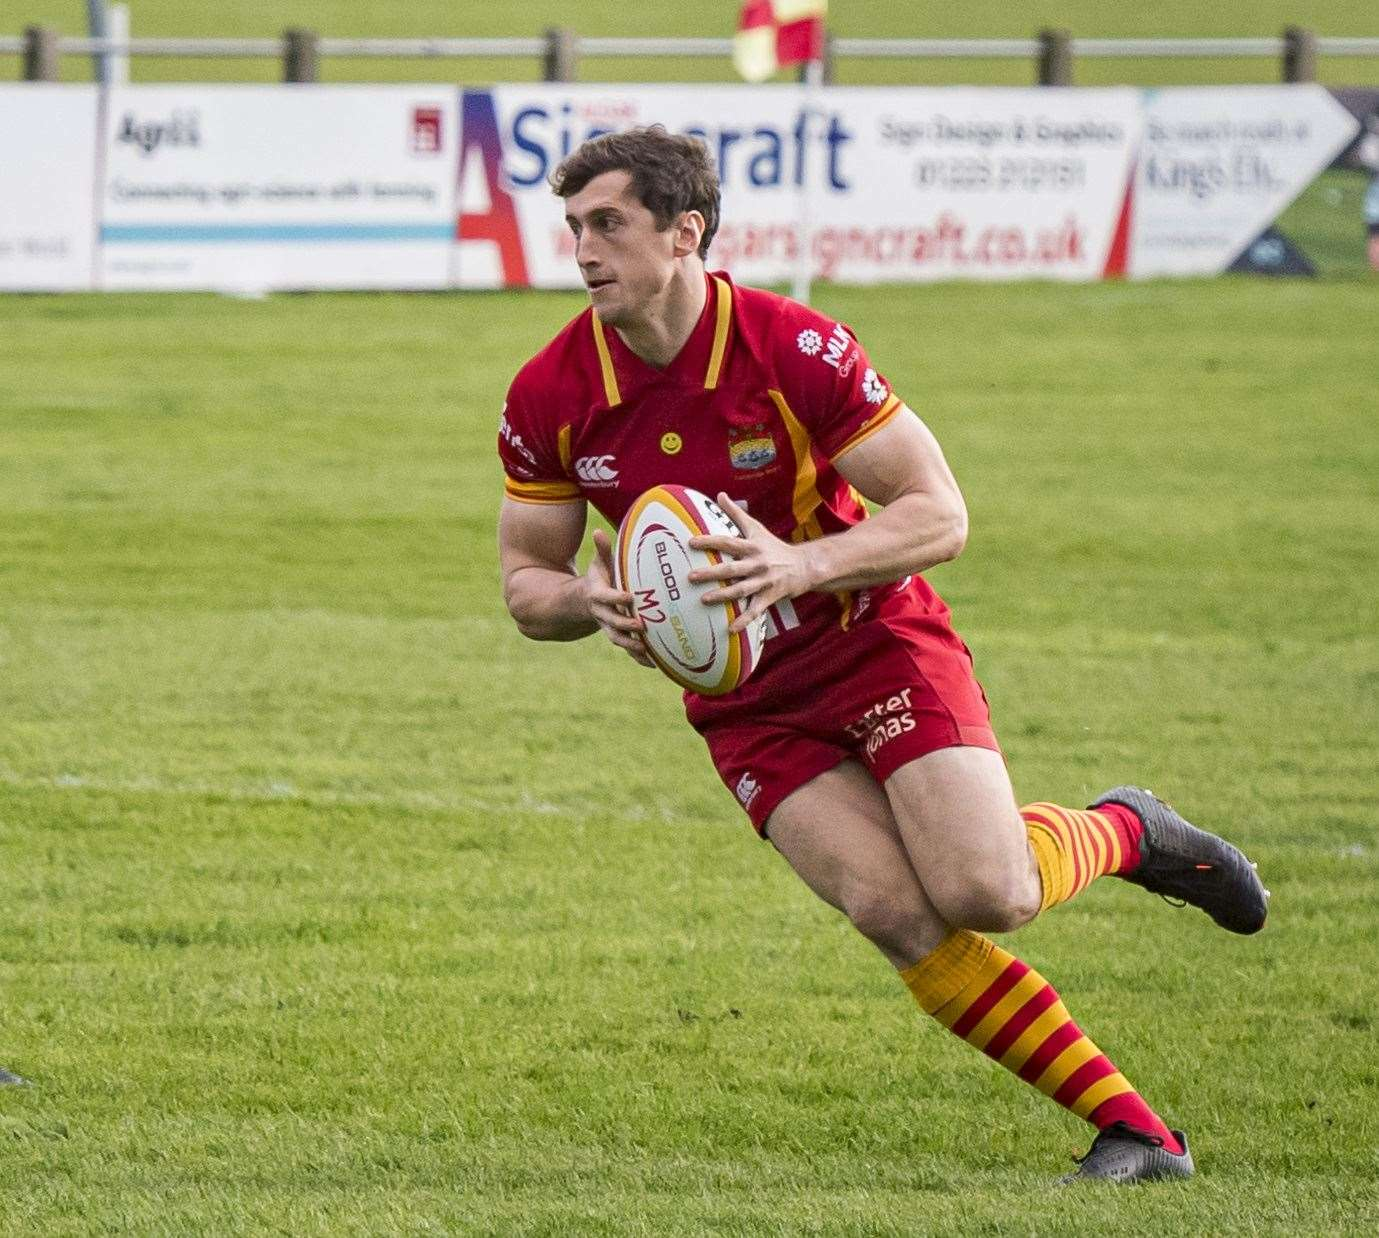 Joe Tarrant scored Cambridge's first try against Bishop's Stortford.